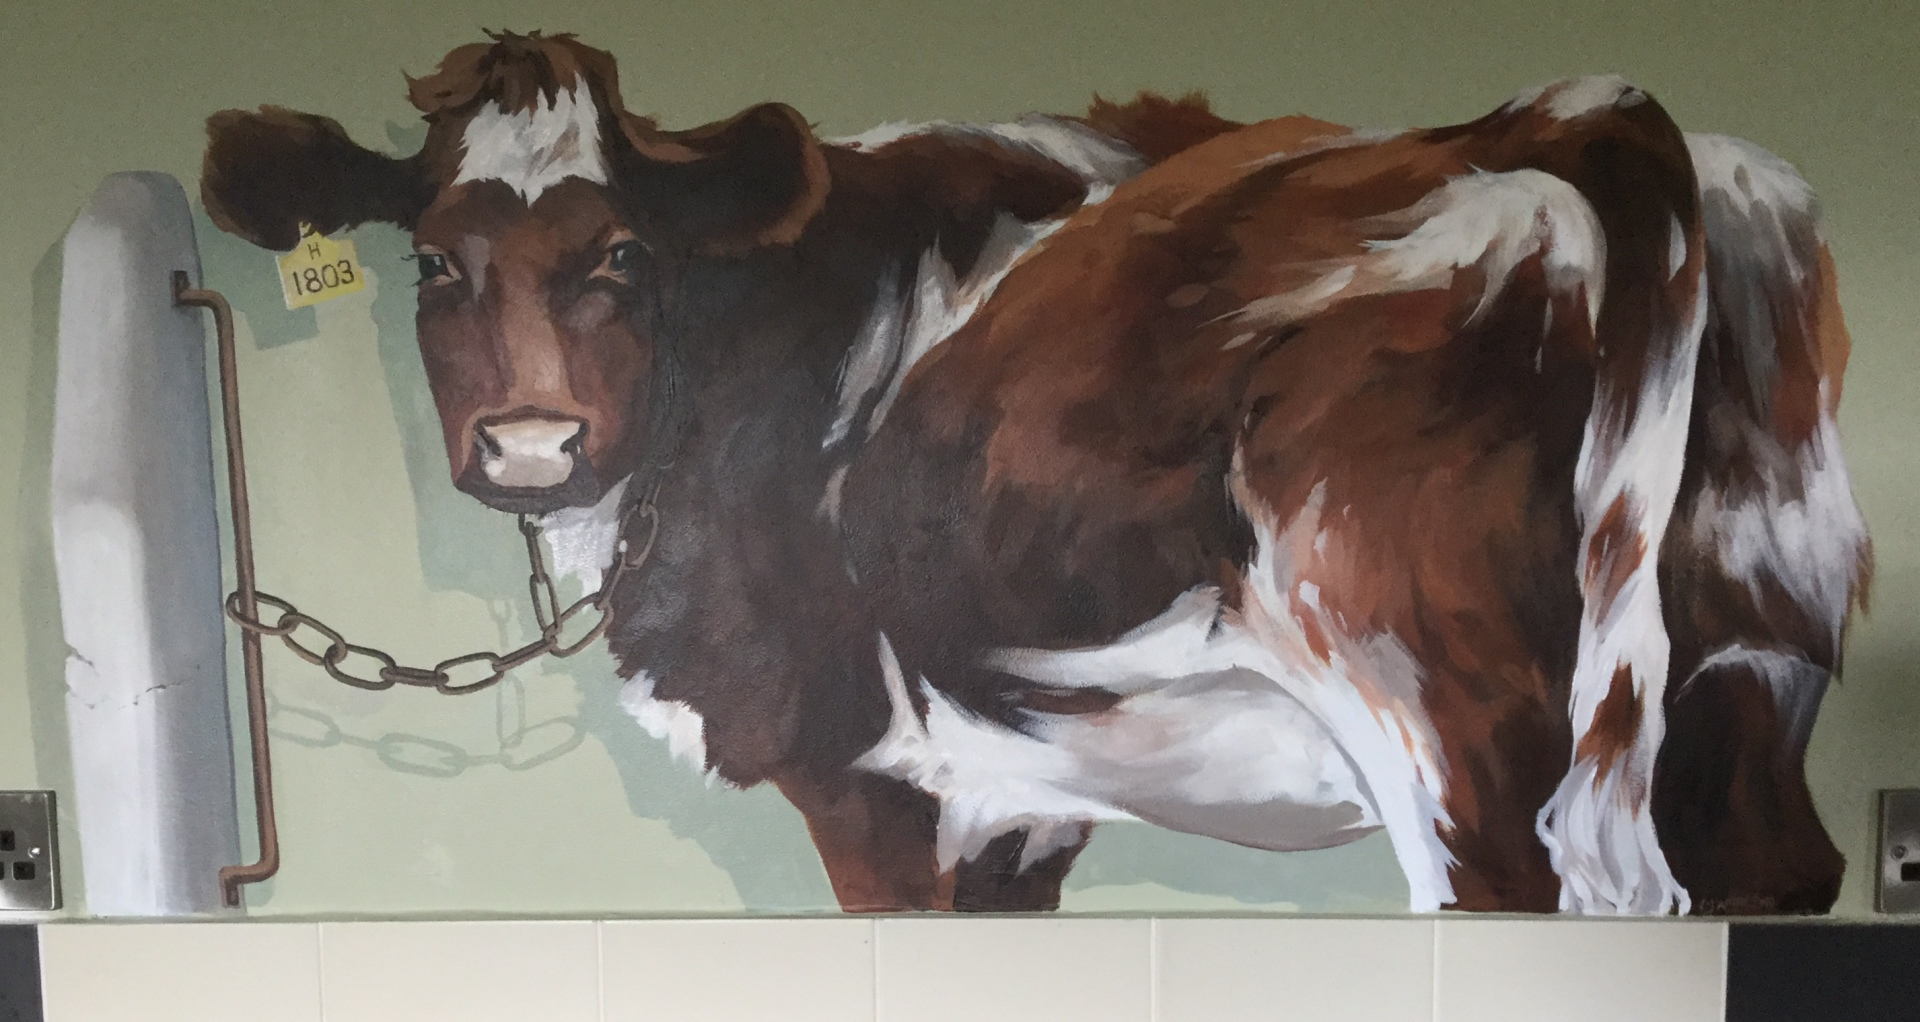 Cow on the kitchen wall, which is a converted barn